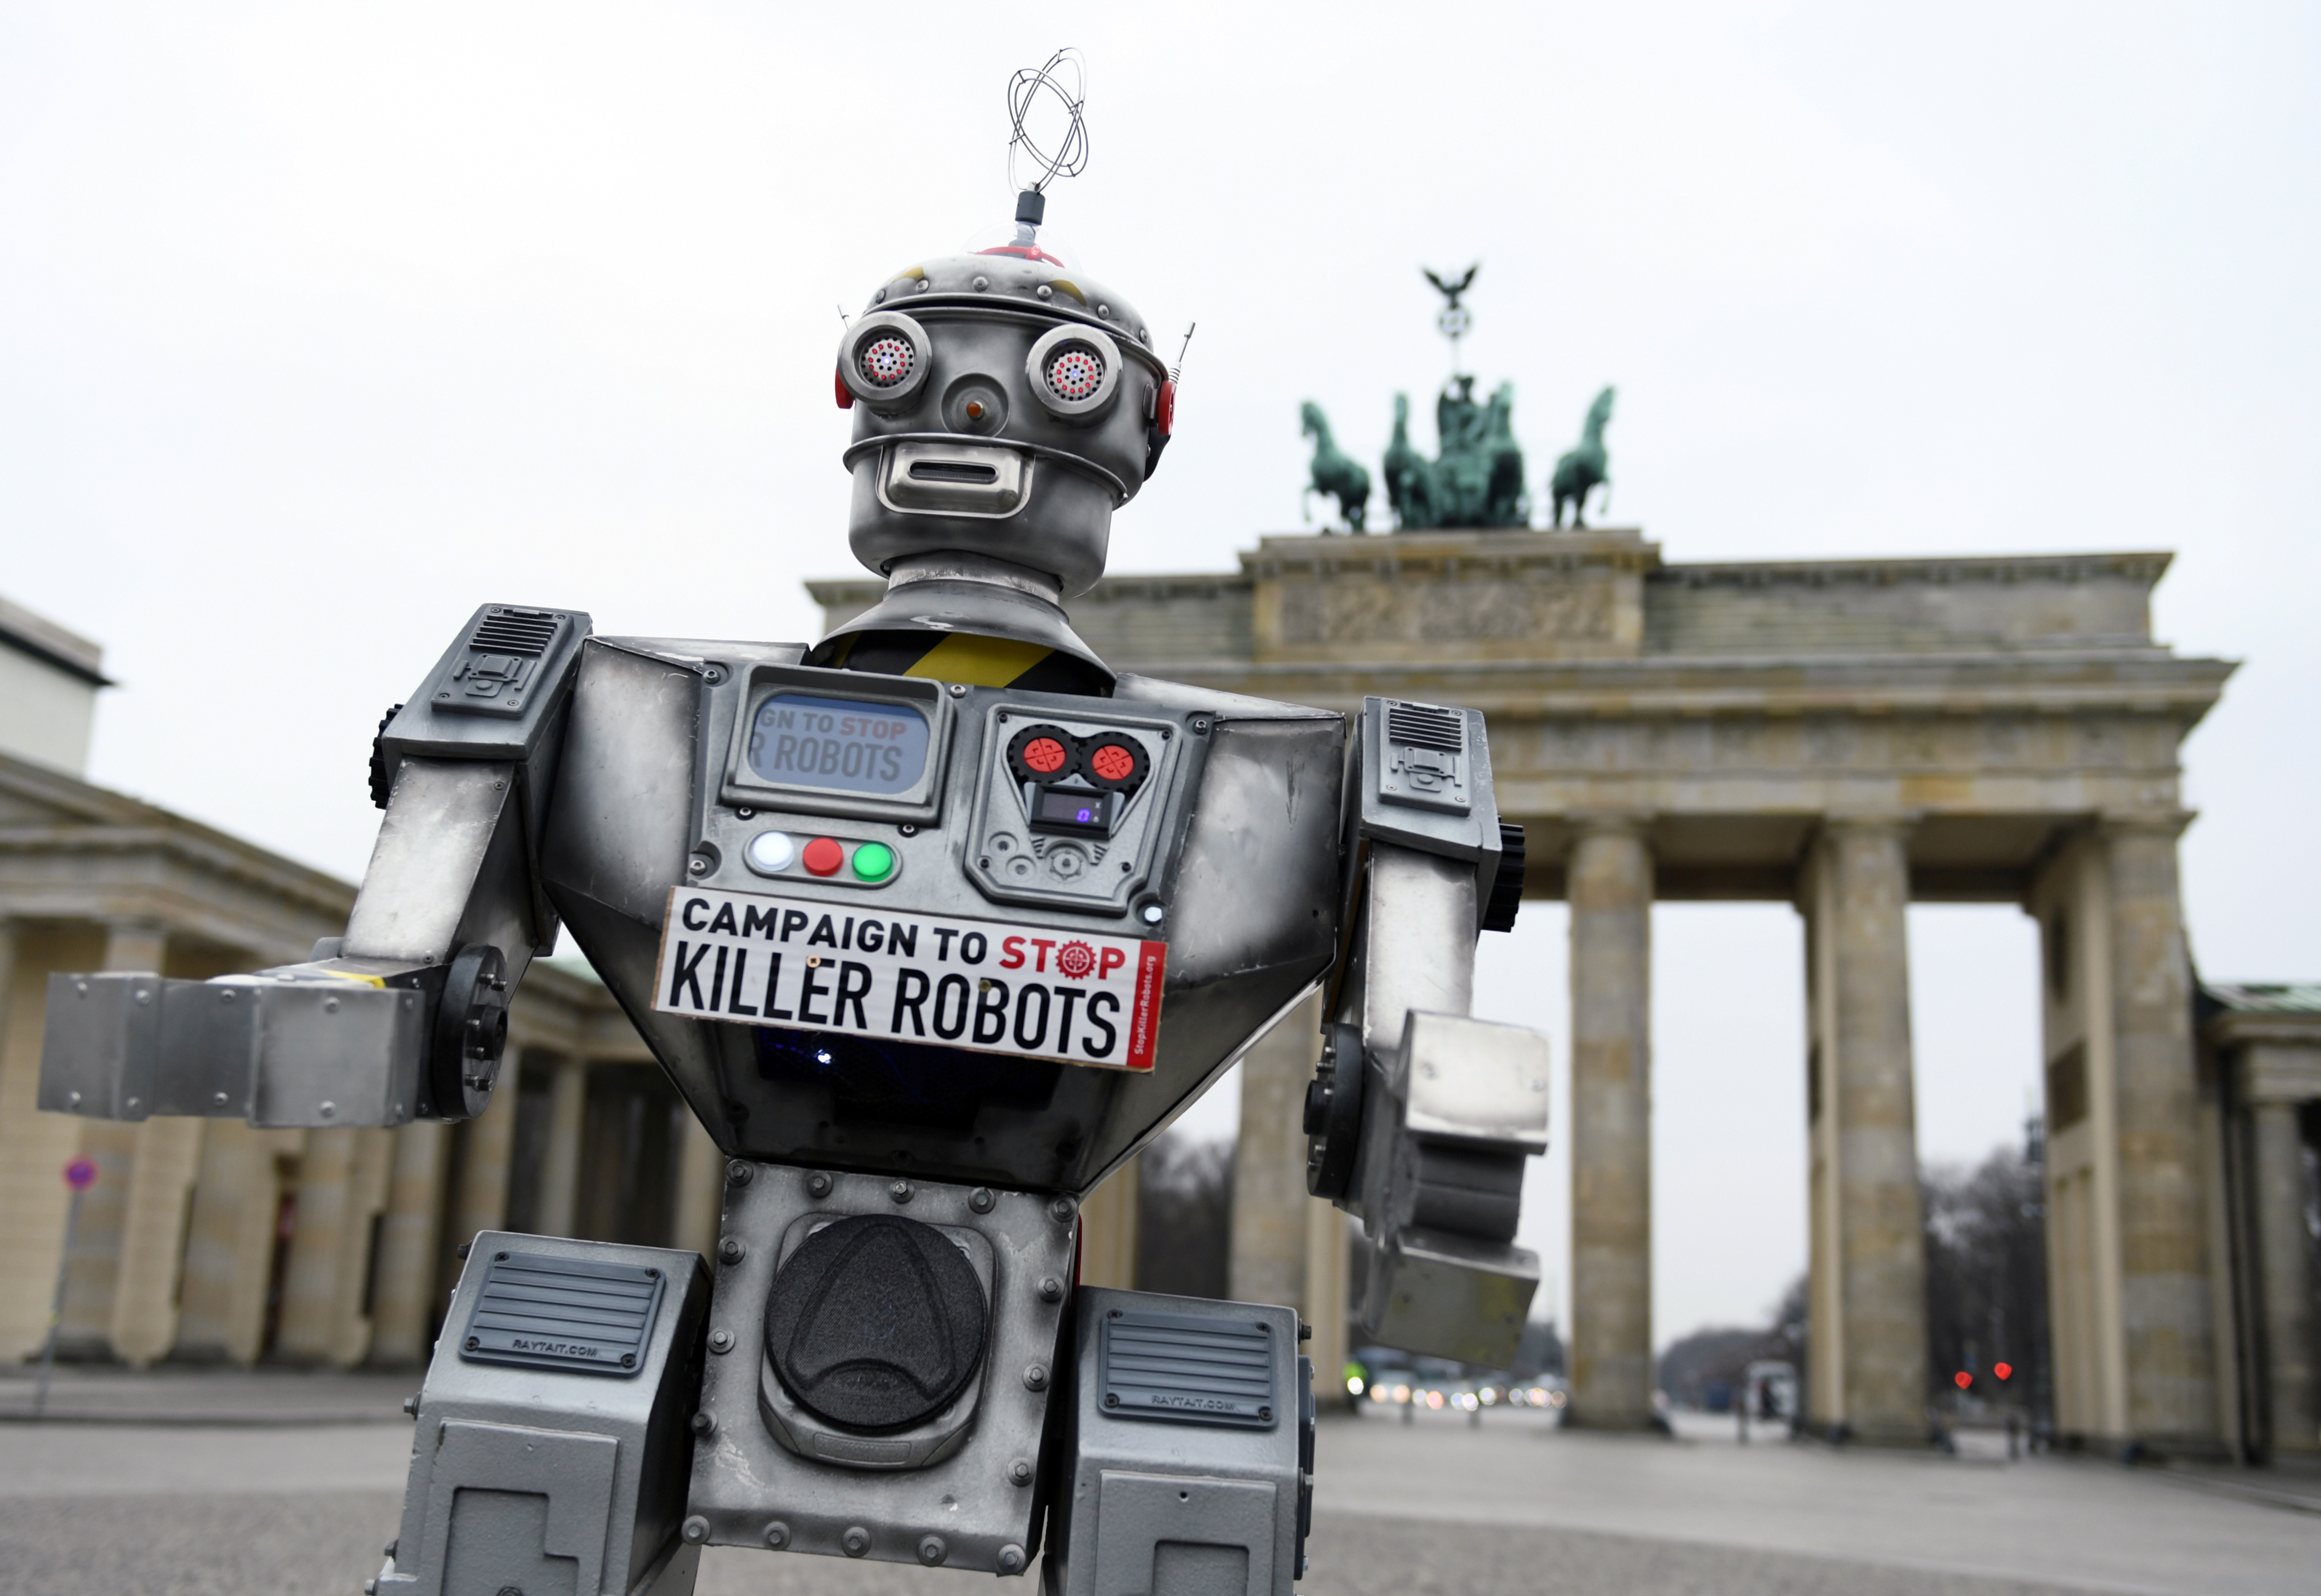 Activists from the Campaign to Stop Killer Robots, a coalition of non-governmental organisations opposing lethal autonomous weapons or so-called 'killer robots', stage a protest at Brandenburg Gate in Berlin, Germany, March, 21, 2019. REUTERS/Annegret Hilse - RC17B0F5E300